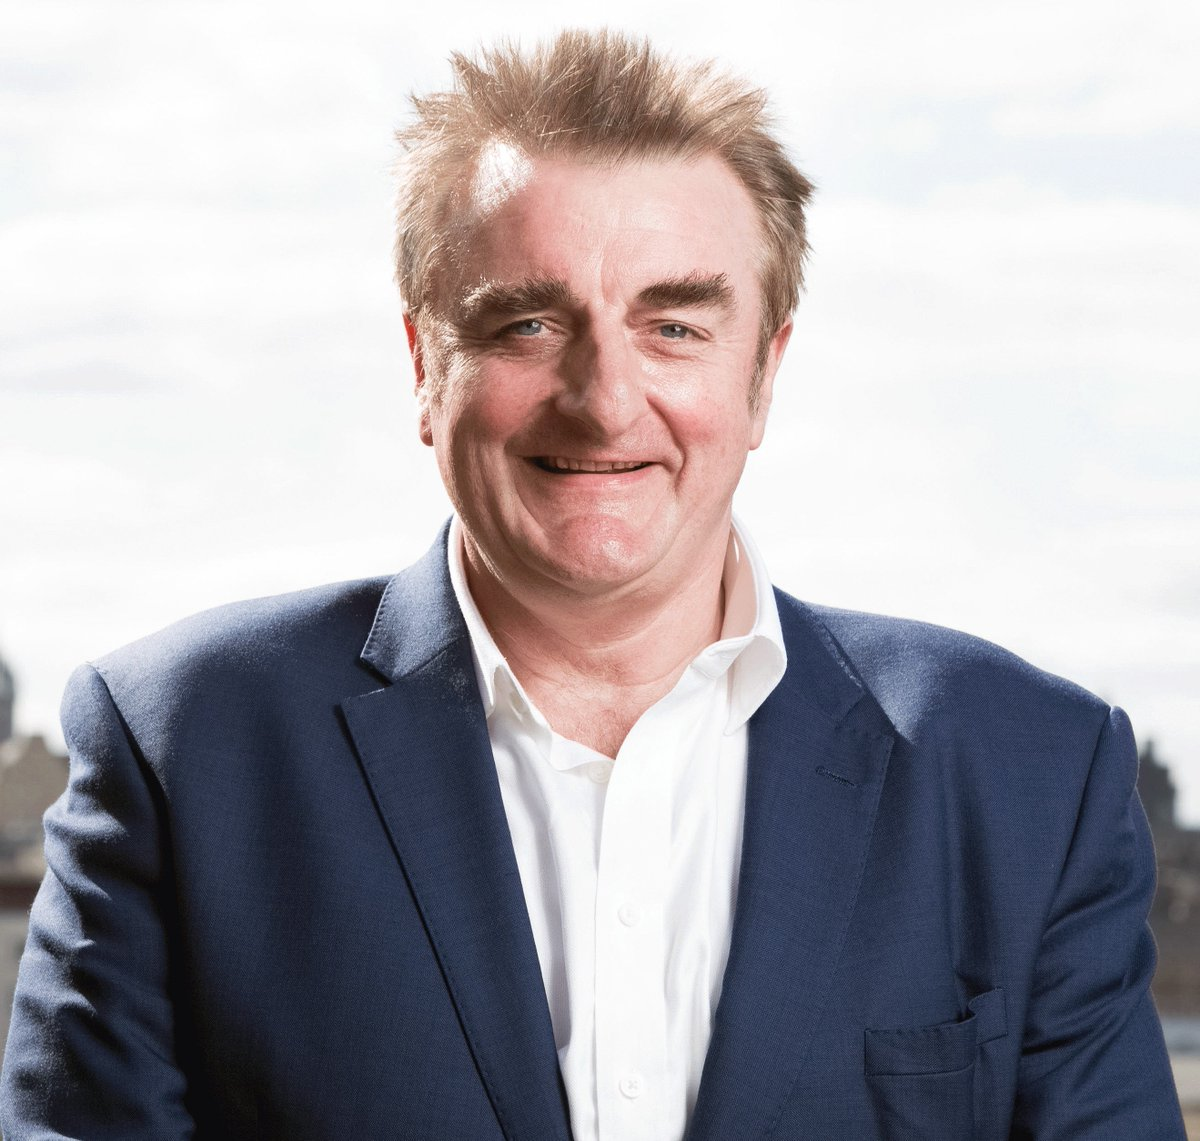 Delighted to announce that @TommySheppard will be giving us a Westminster update at our branch meeting tomorrow at Southside Community Centre. Given the #powergrab & #SNPwalkout, it will be an interesting one! See you tomorrow night at 7:30 p.m.